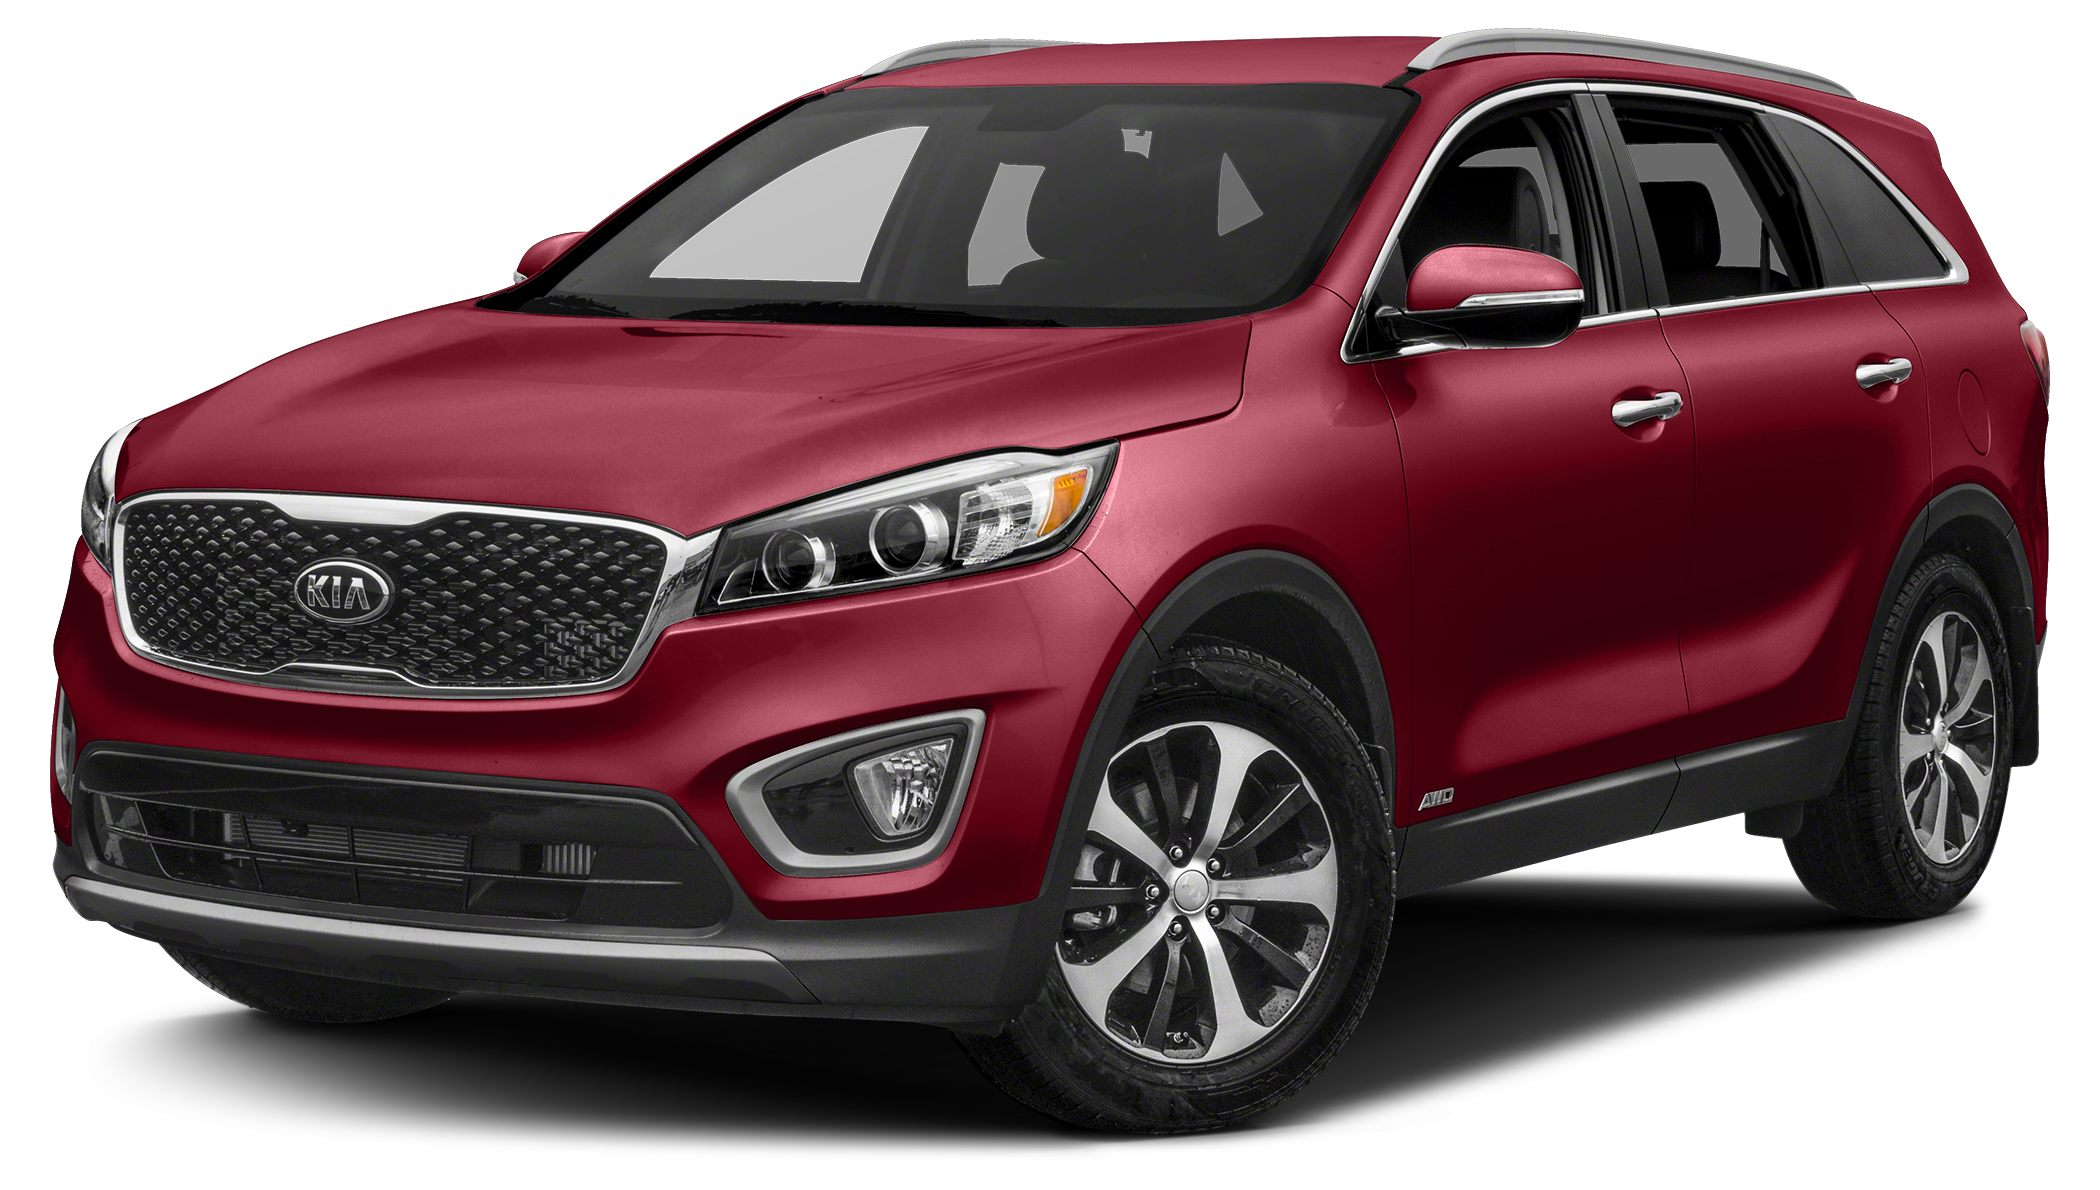 2017 Kia Sorento 20T EX At Sunset Kia of Sarasota we pride ourselves on exceptional customer serv